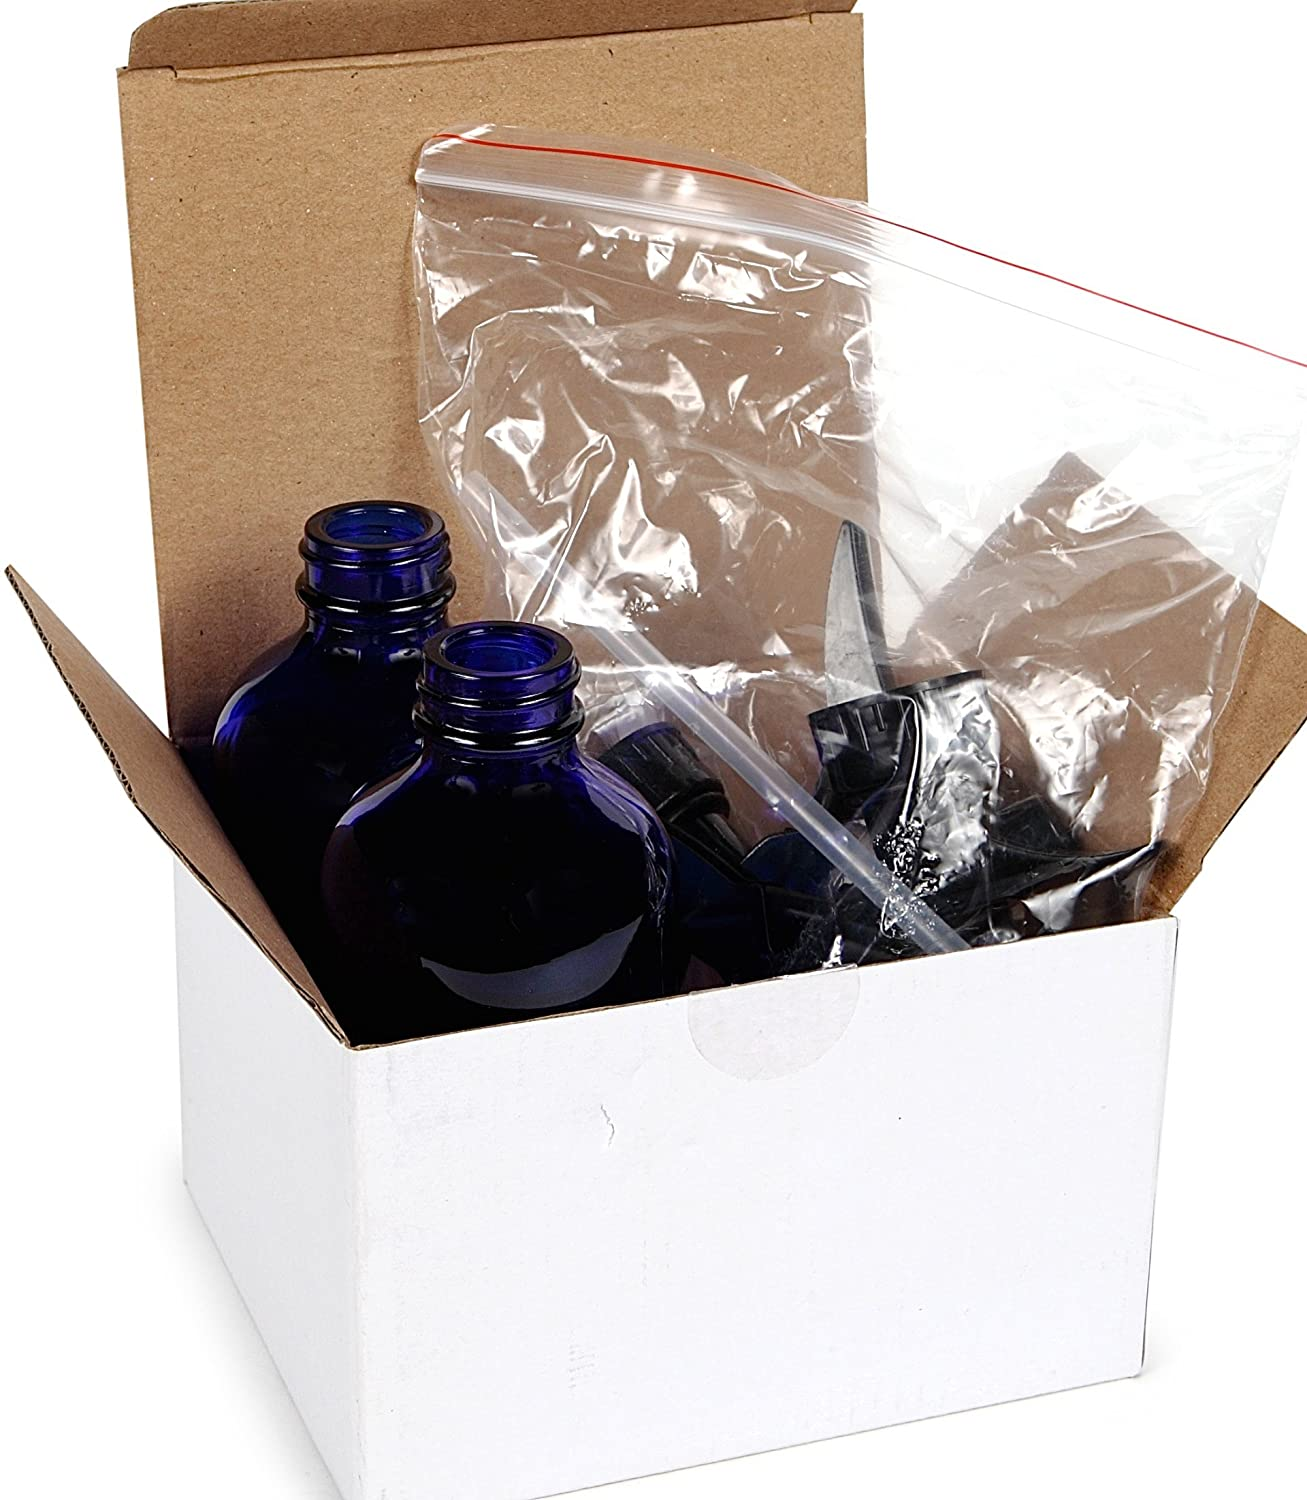 Vivaplex, 2, Large, 8 oz, Empty, Cobalt Blue Glass Spray Bottles with Black Trigger Sprayers